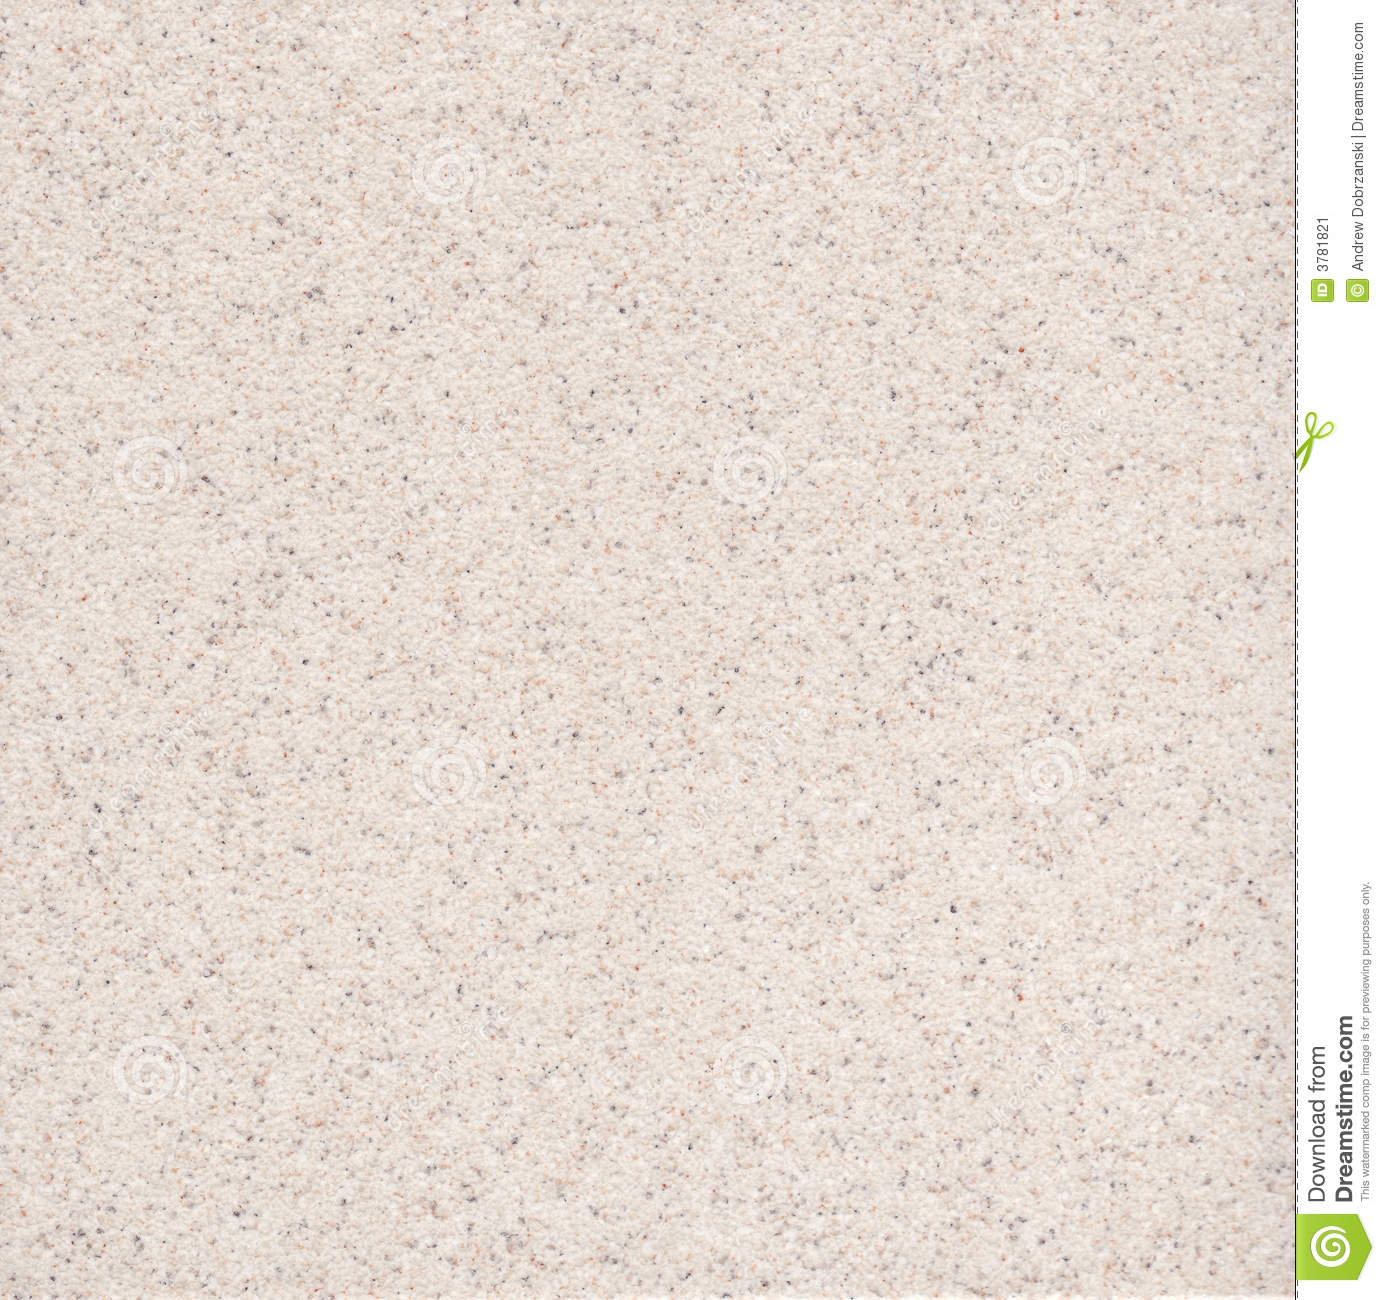 Ceramic Tile Texture Stock Image Image Of Neutral